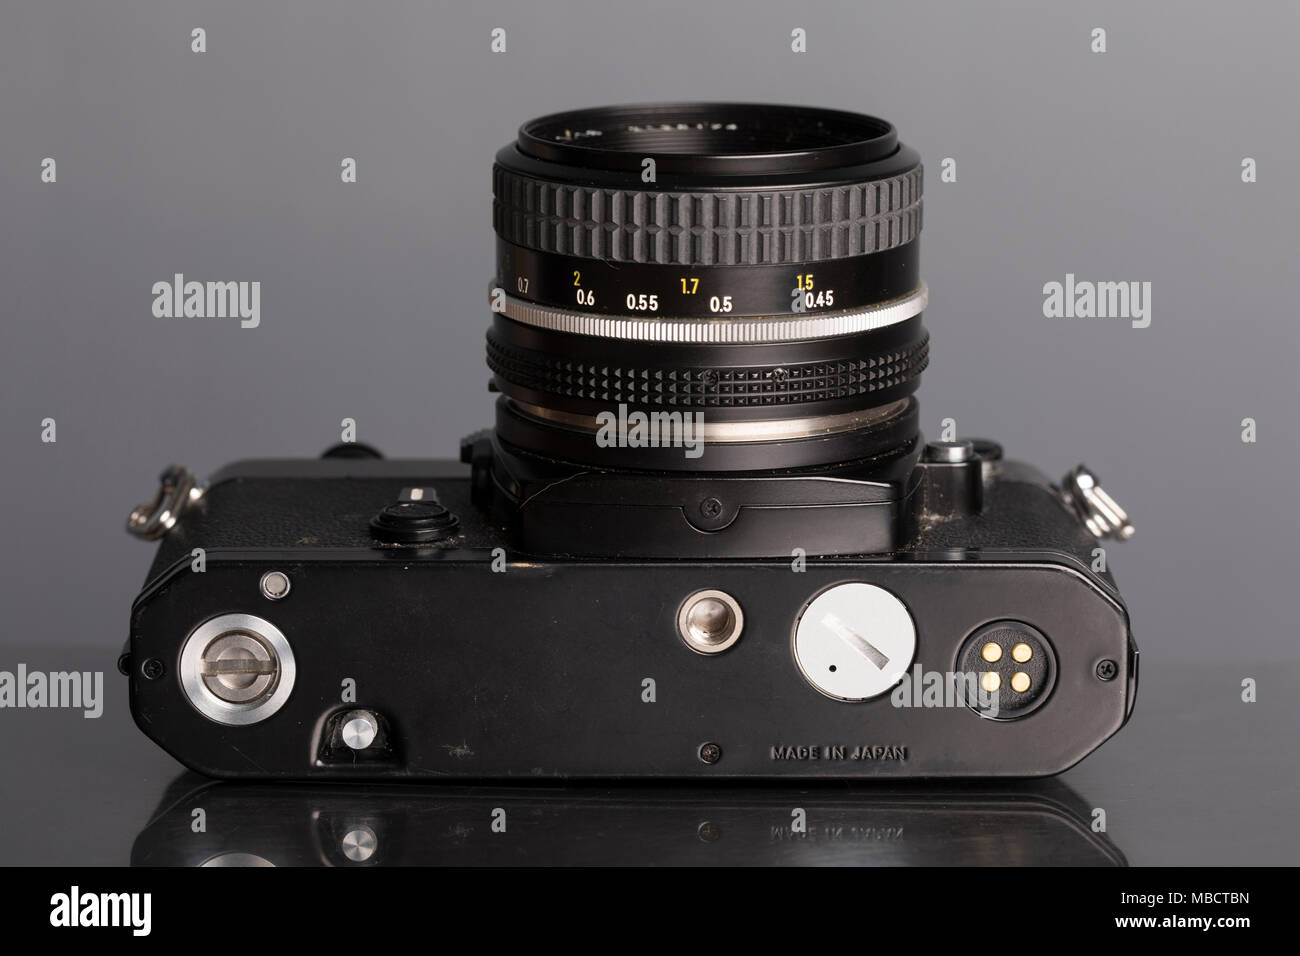 Nikon FE 35mm SLR single lens reflex film camera with 50mm f1.8 Nikkor lens - Stock Image